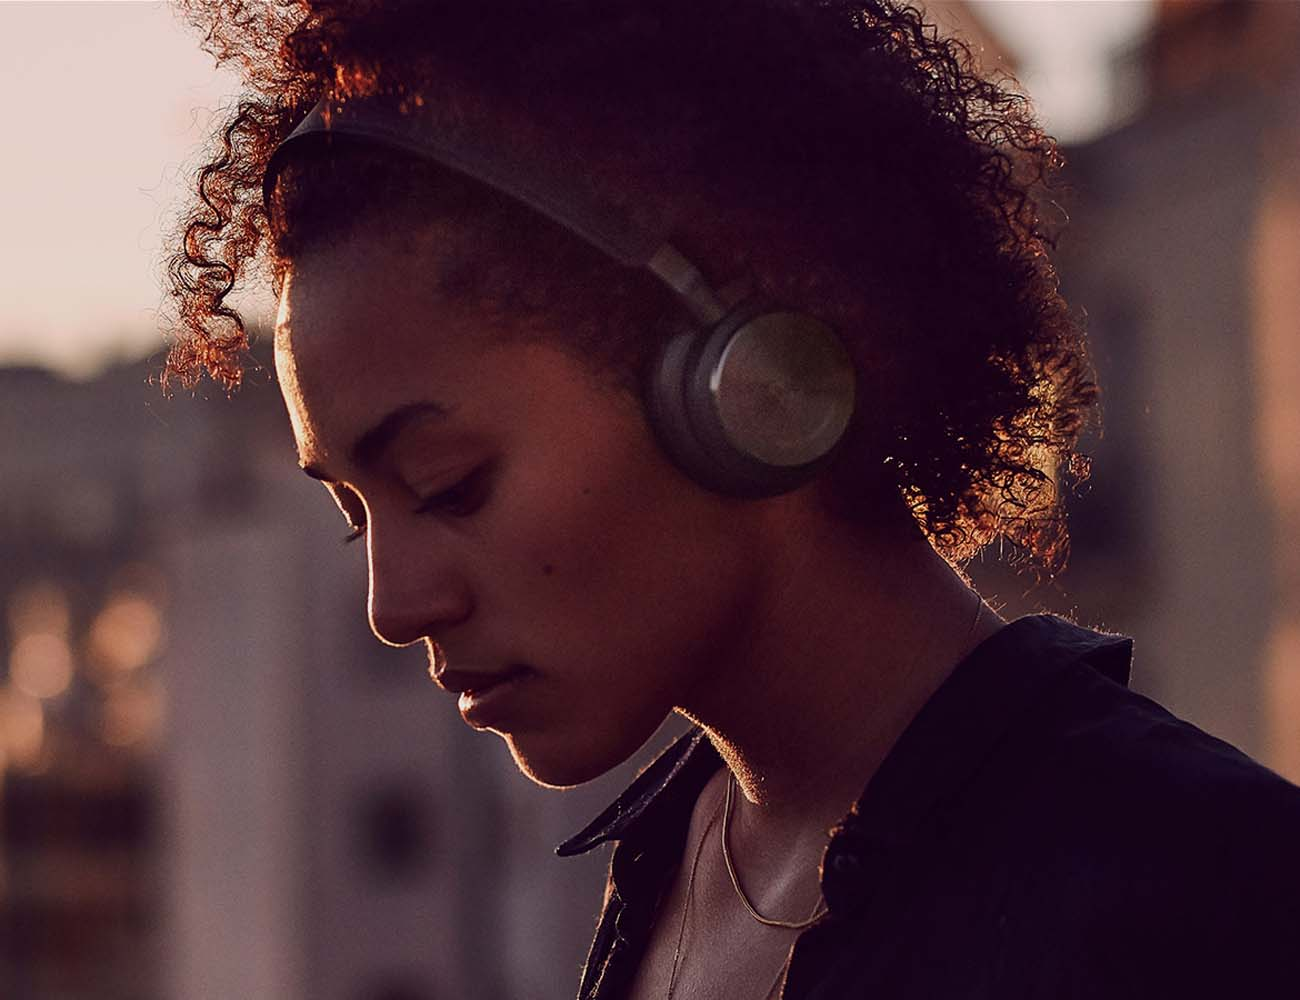 H8 – Wireless Headphones by BeoPlay With Active Noise Cancellation